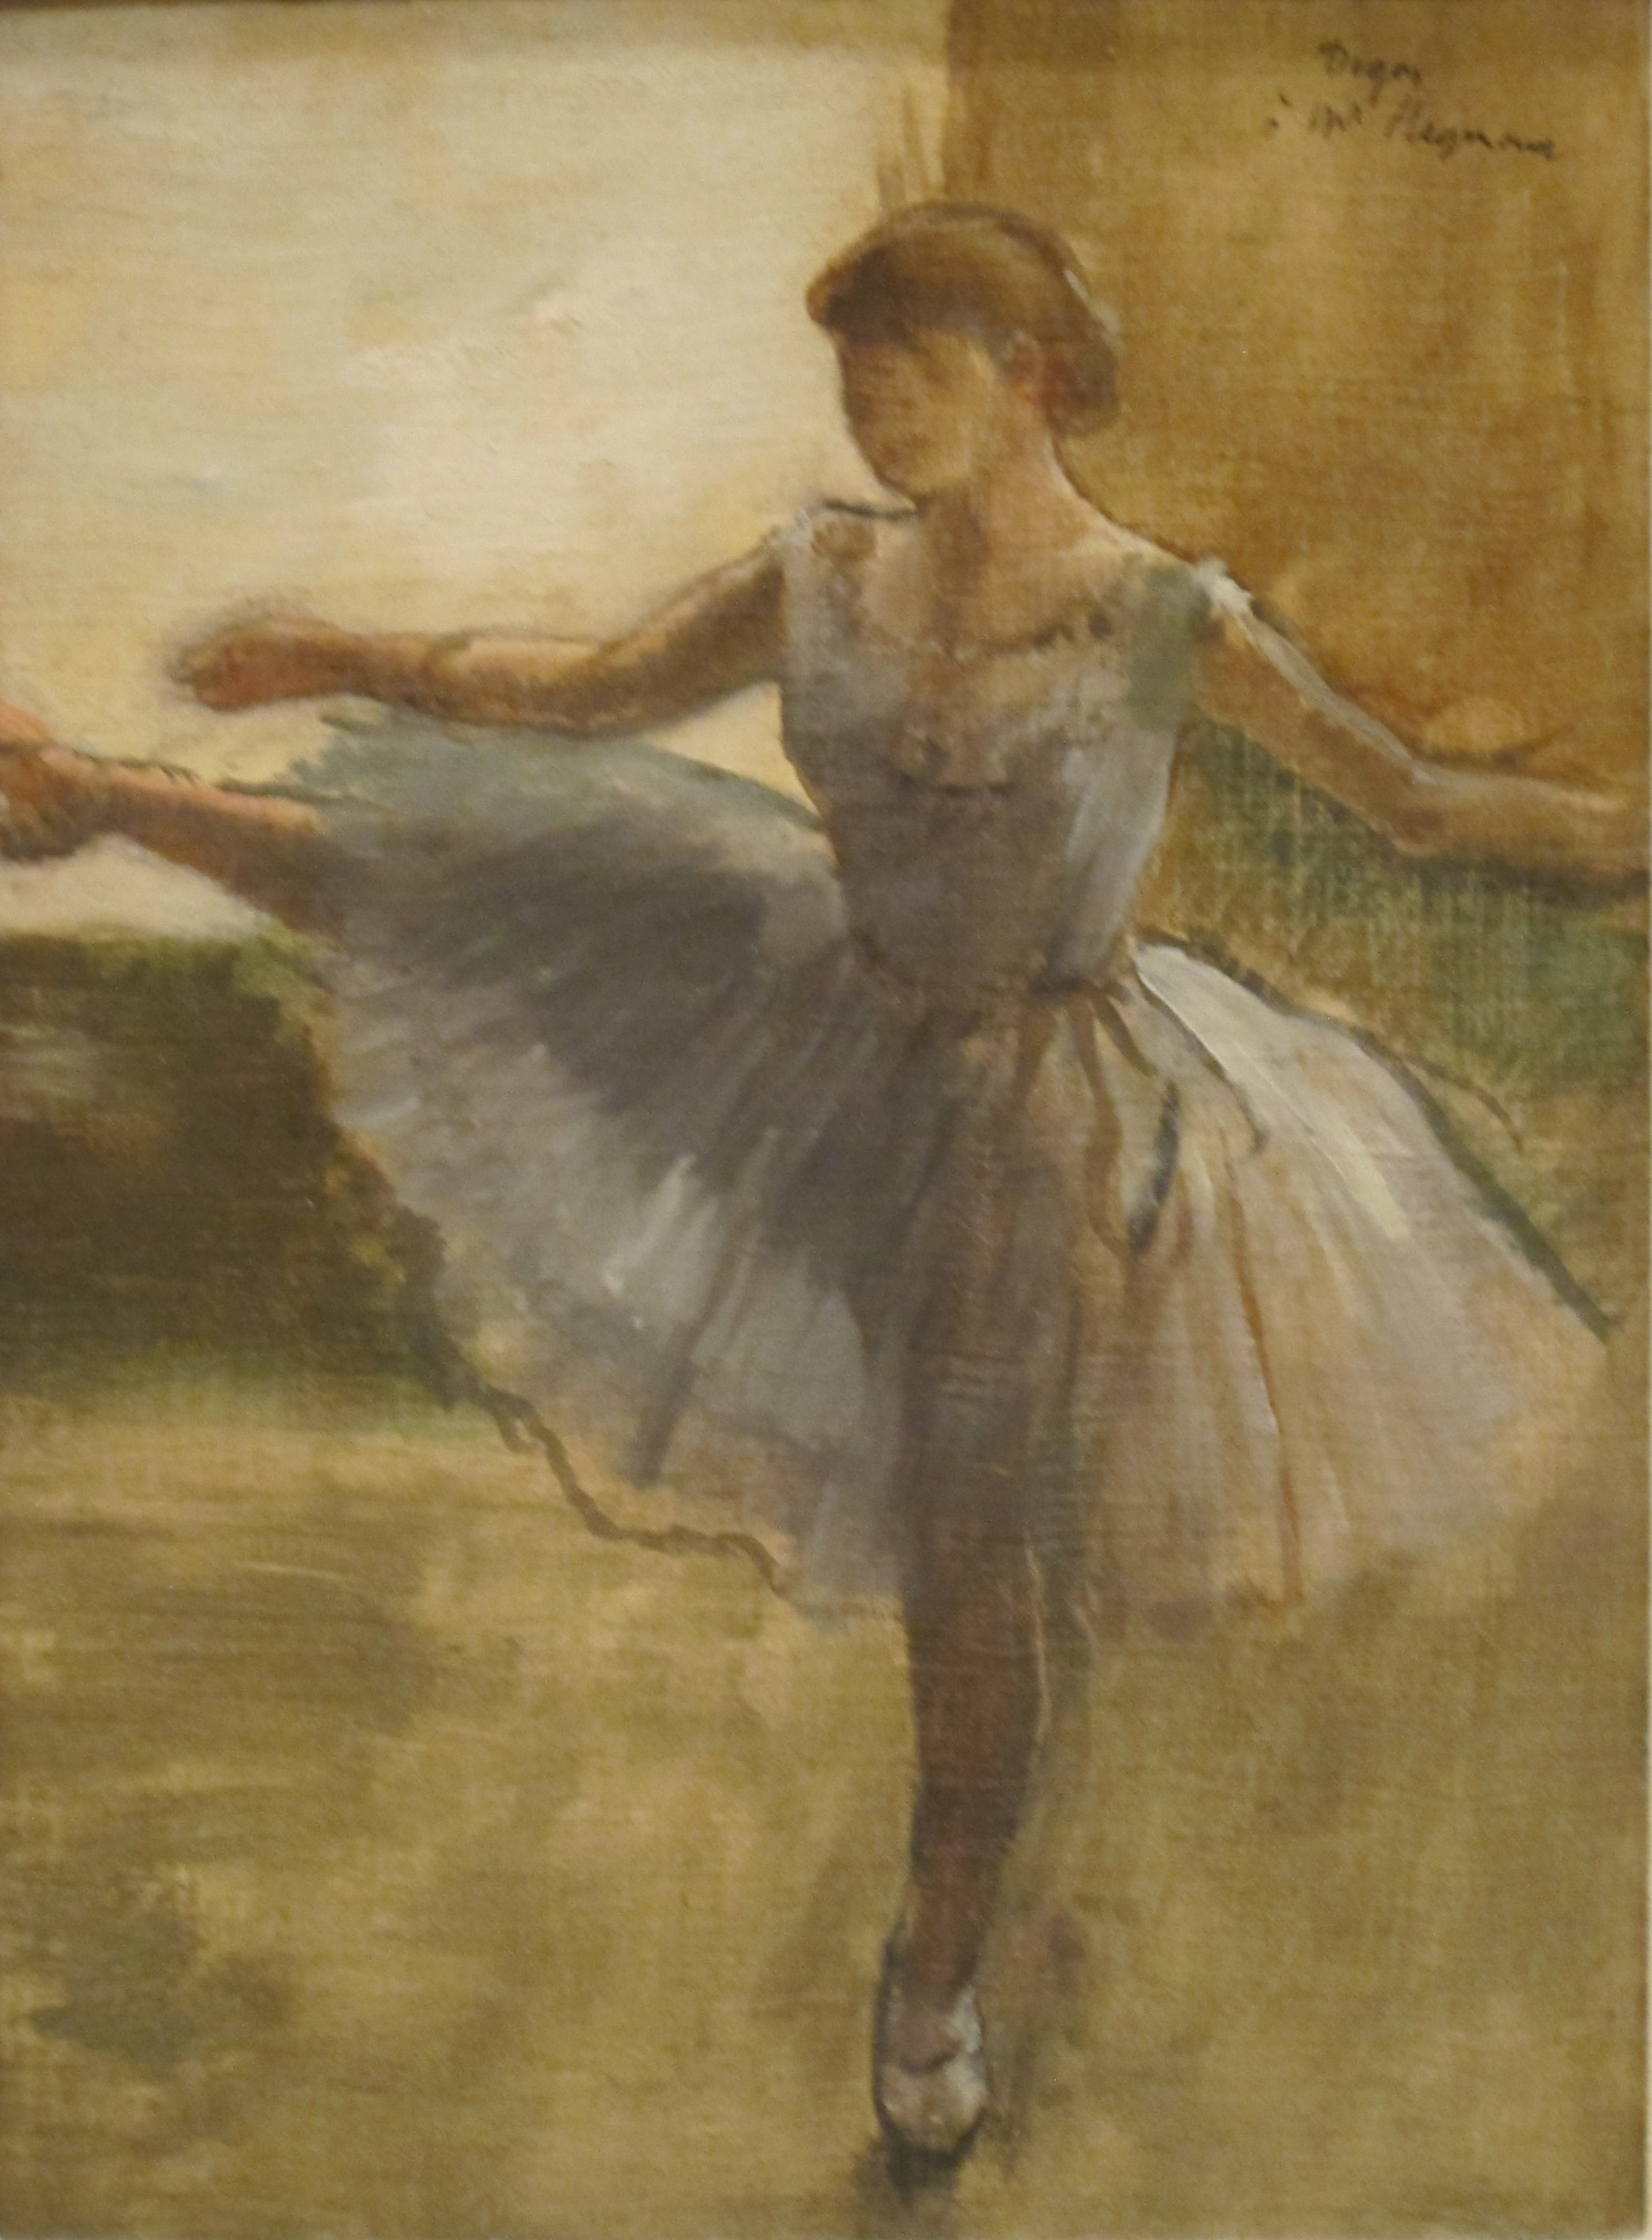 Prova Di Balletto Degas 1000 43 Images About Edgar Degas On Pinterest Edgar Degas